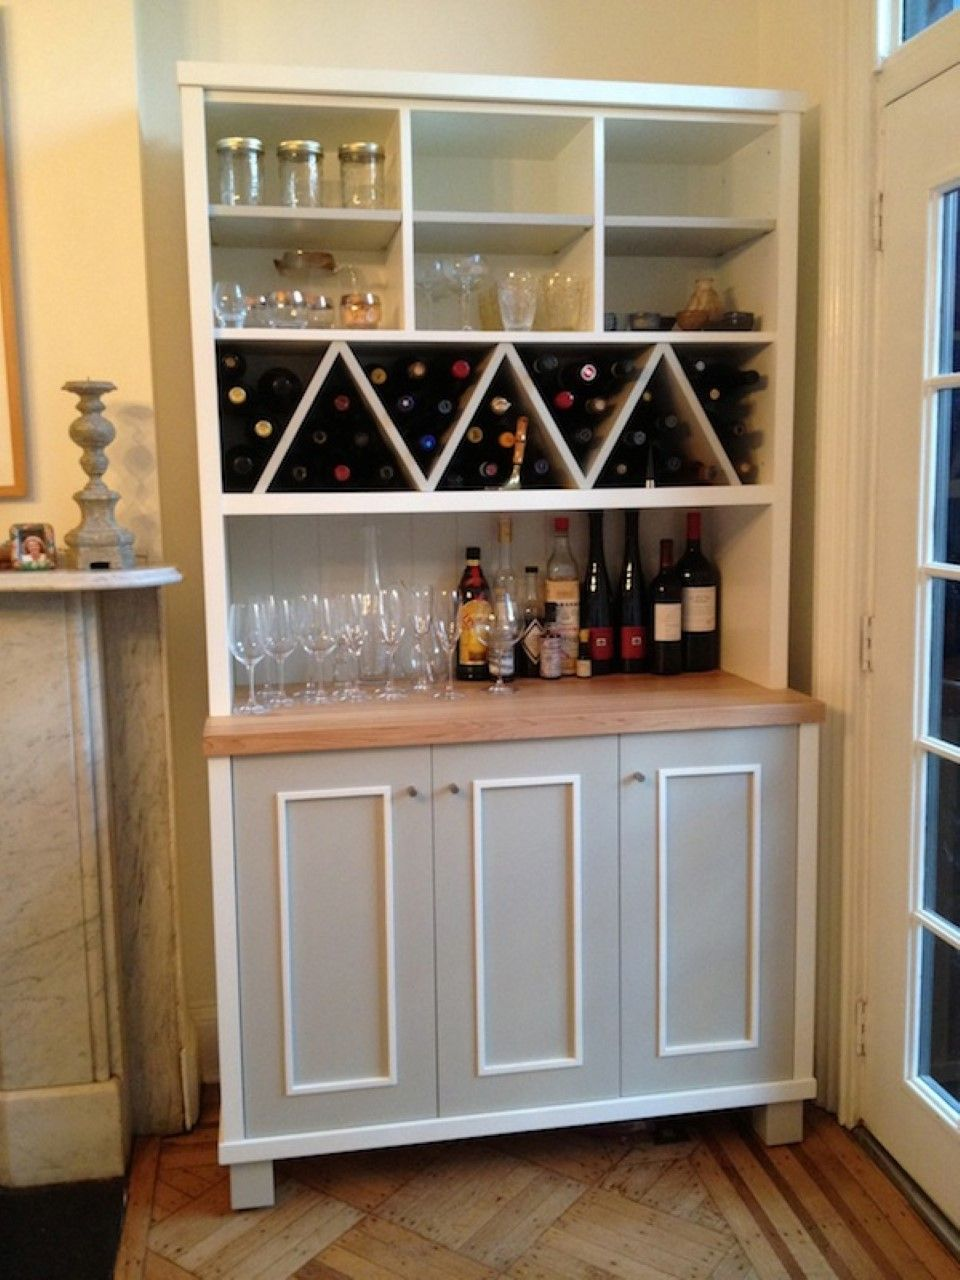 Zigzag Shaped Wine Racks With Multi Purposes Kitchen Wall Storage